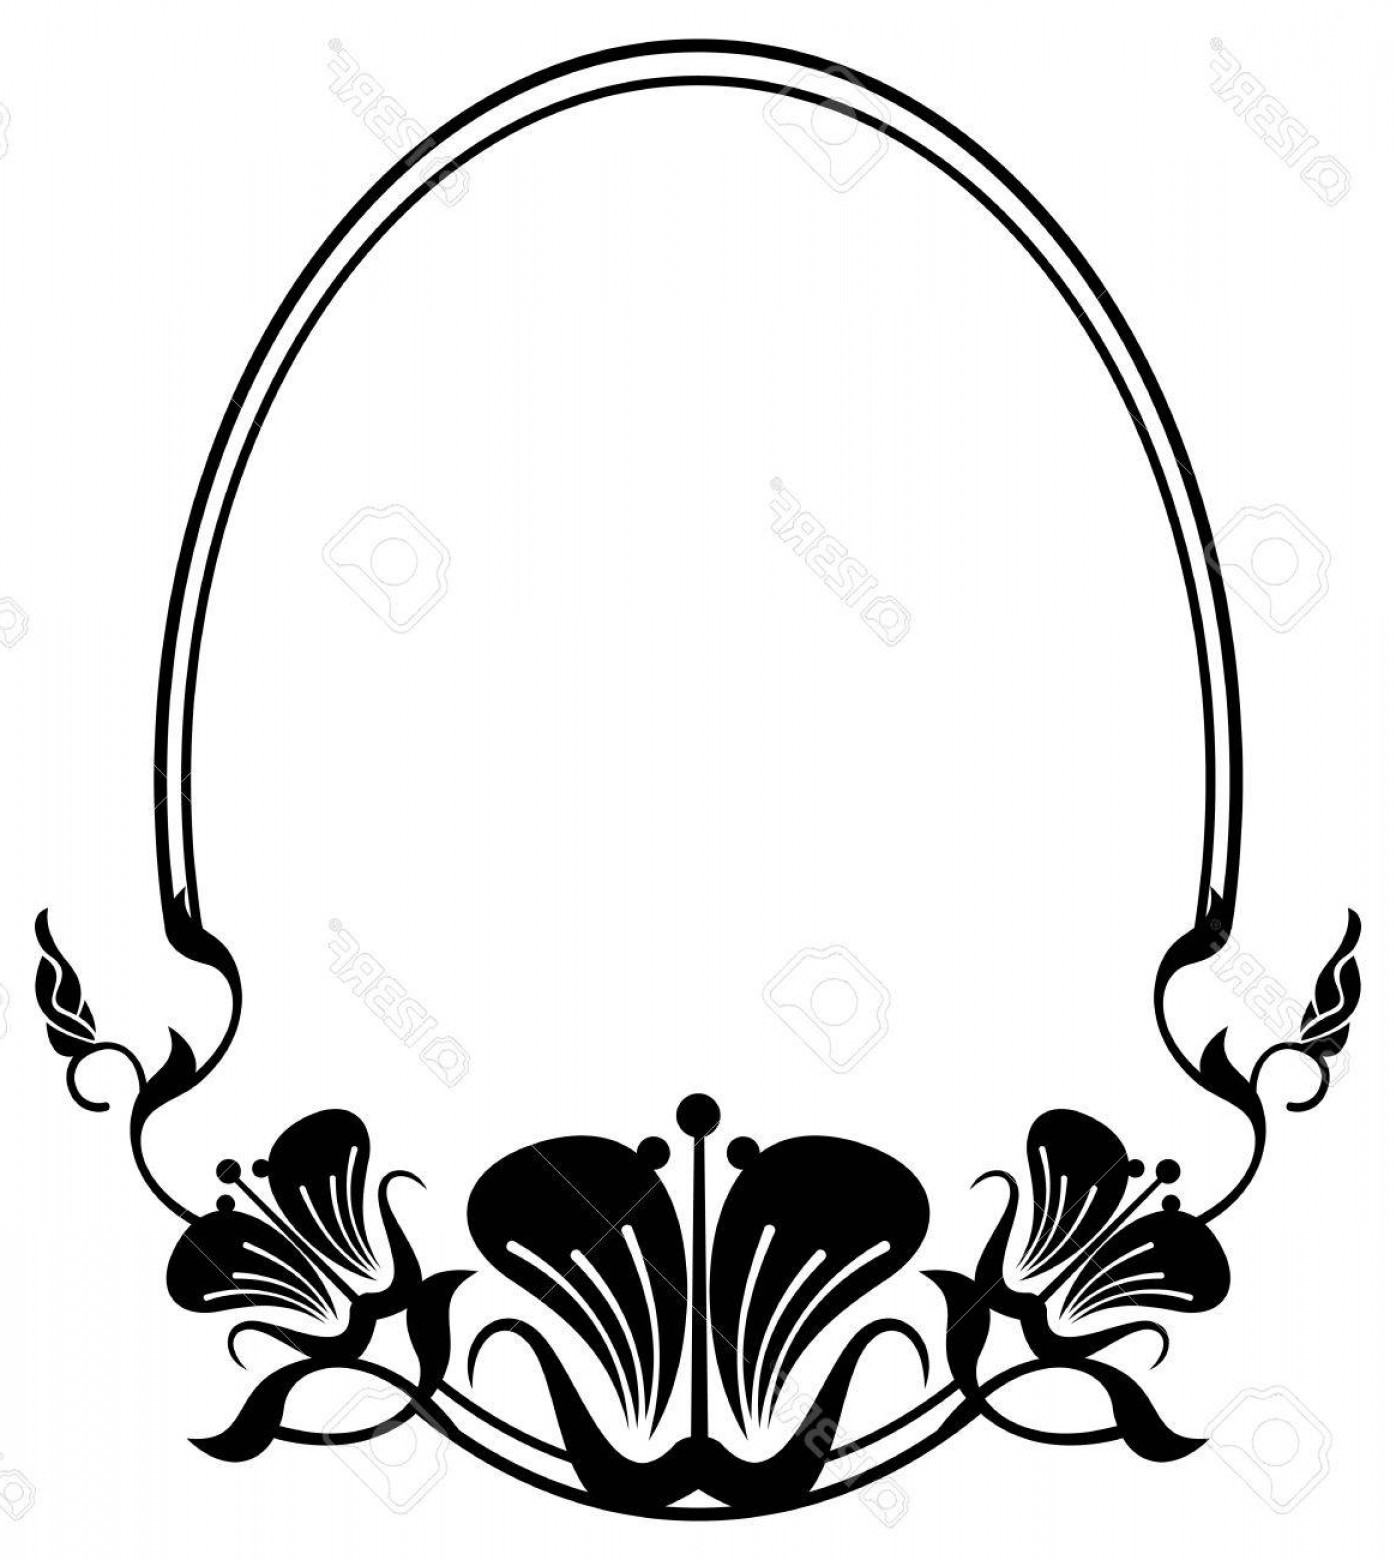 1396x1560 Photostock Vector Silhouette Oval Frame Abstract Black And White